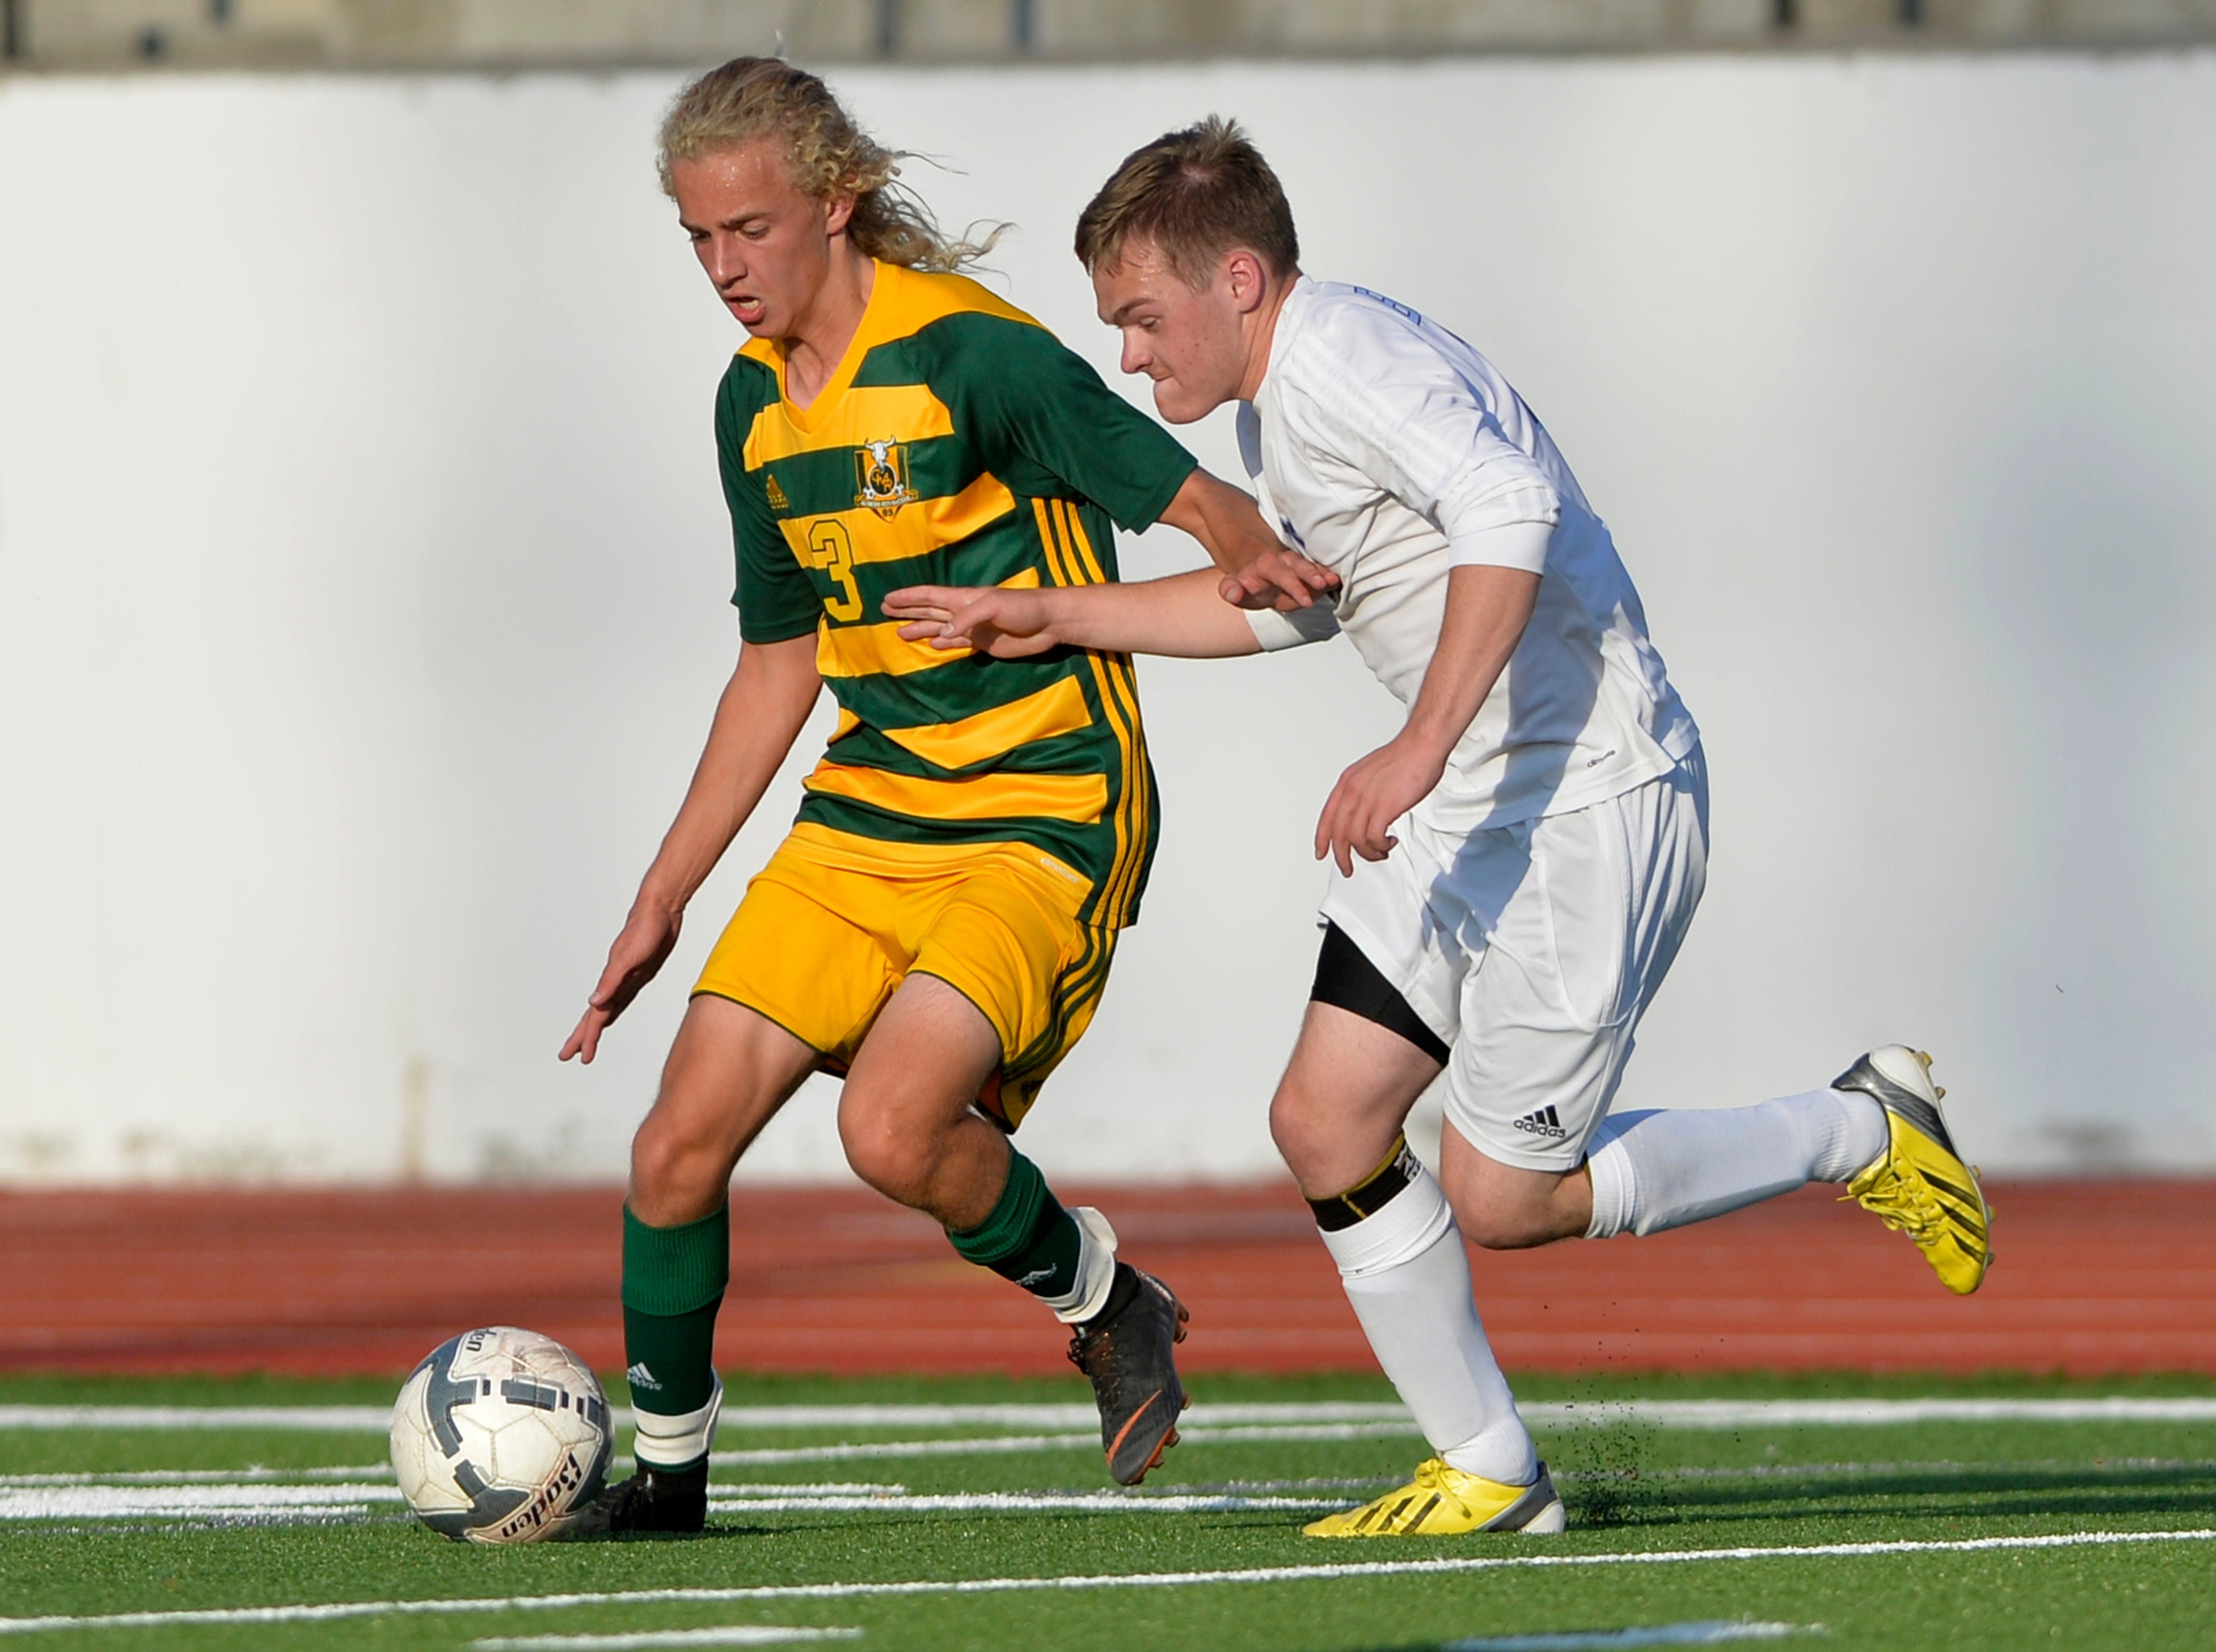 CMR's Ward Cereck attempts to keep the ball away from CMR's Alex Shandelson during the boys crosstown soccer match at Memorial Stadium, Thursday, Sept. 6, 2018.